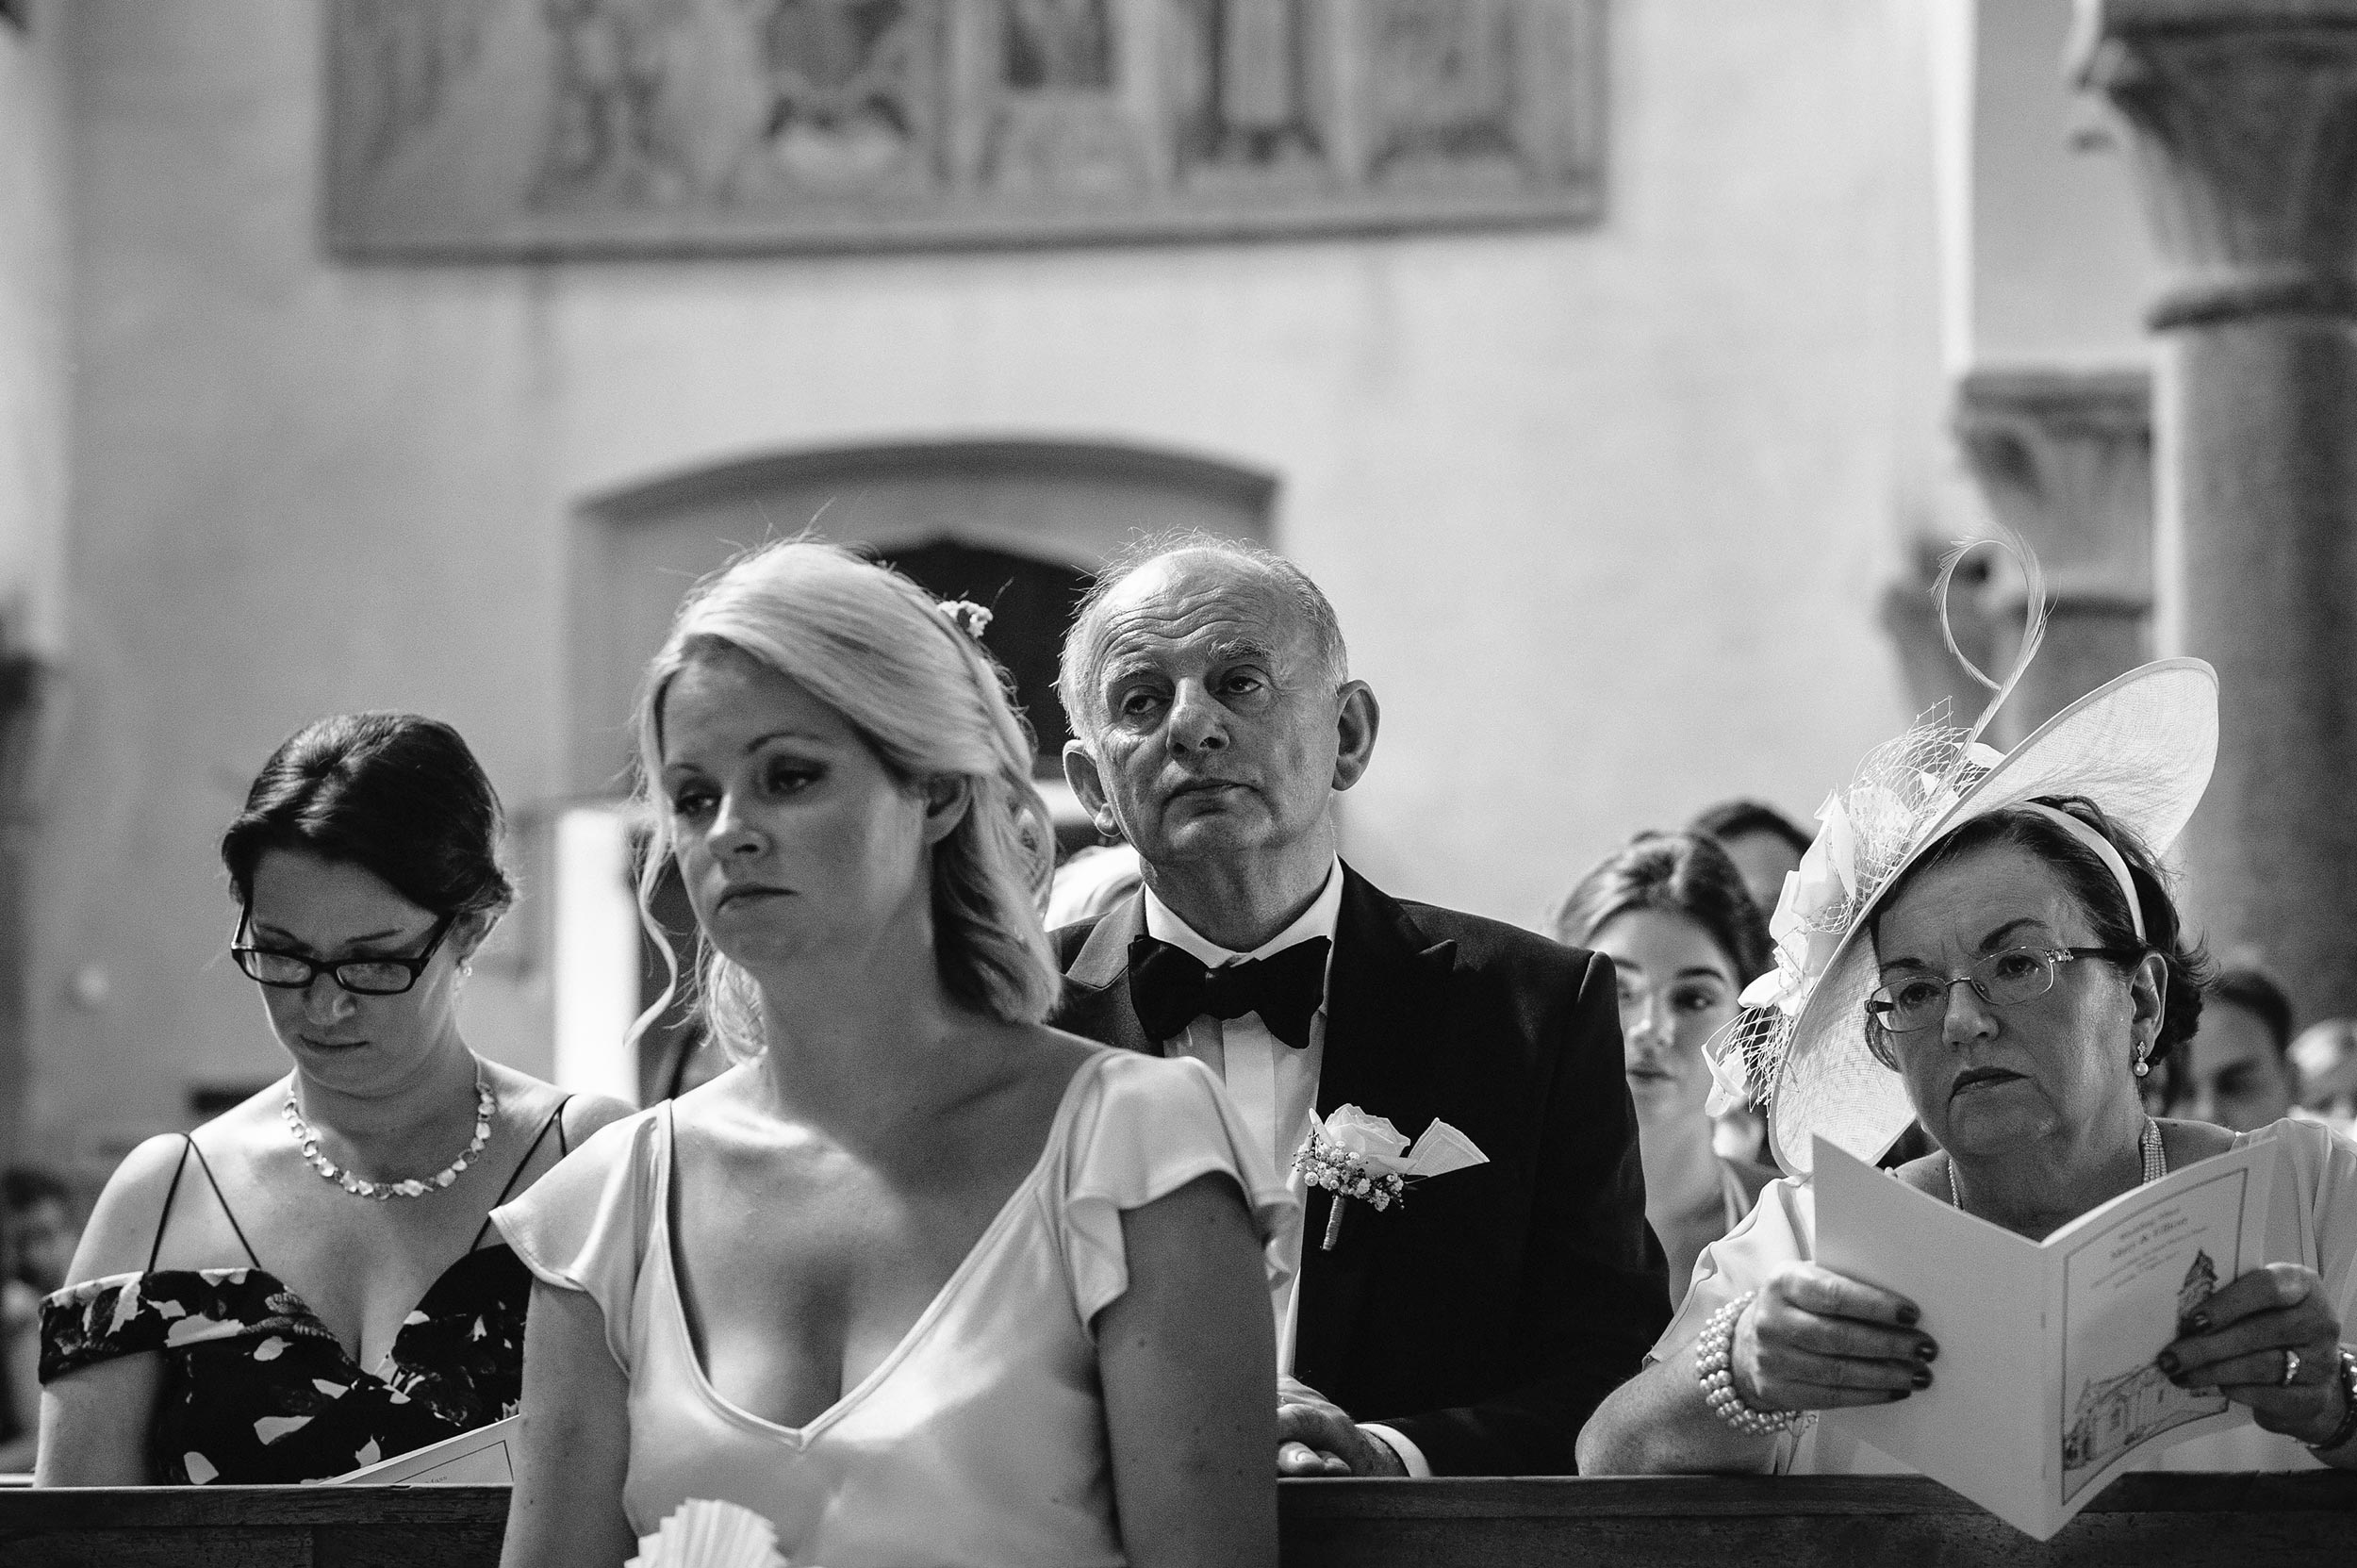 bored-guests-ceremony-black-and-white-wedding-photography.jpg